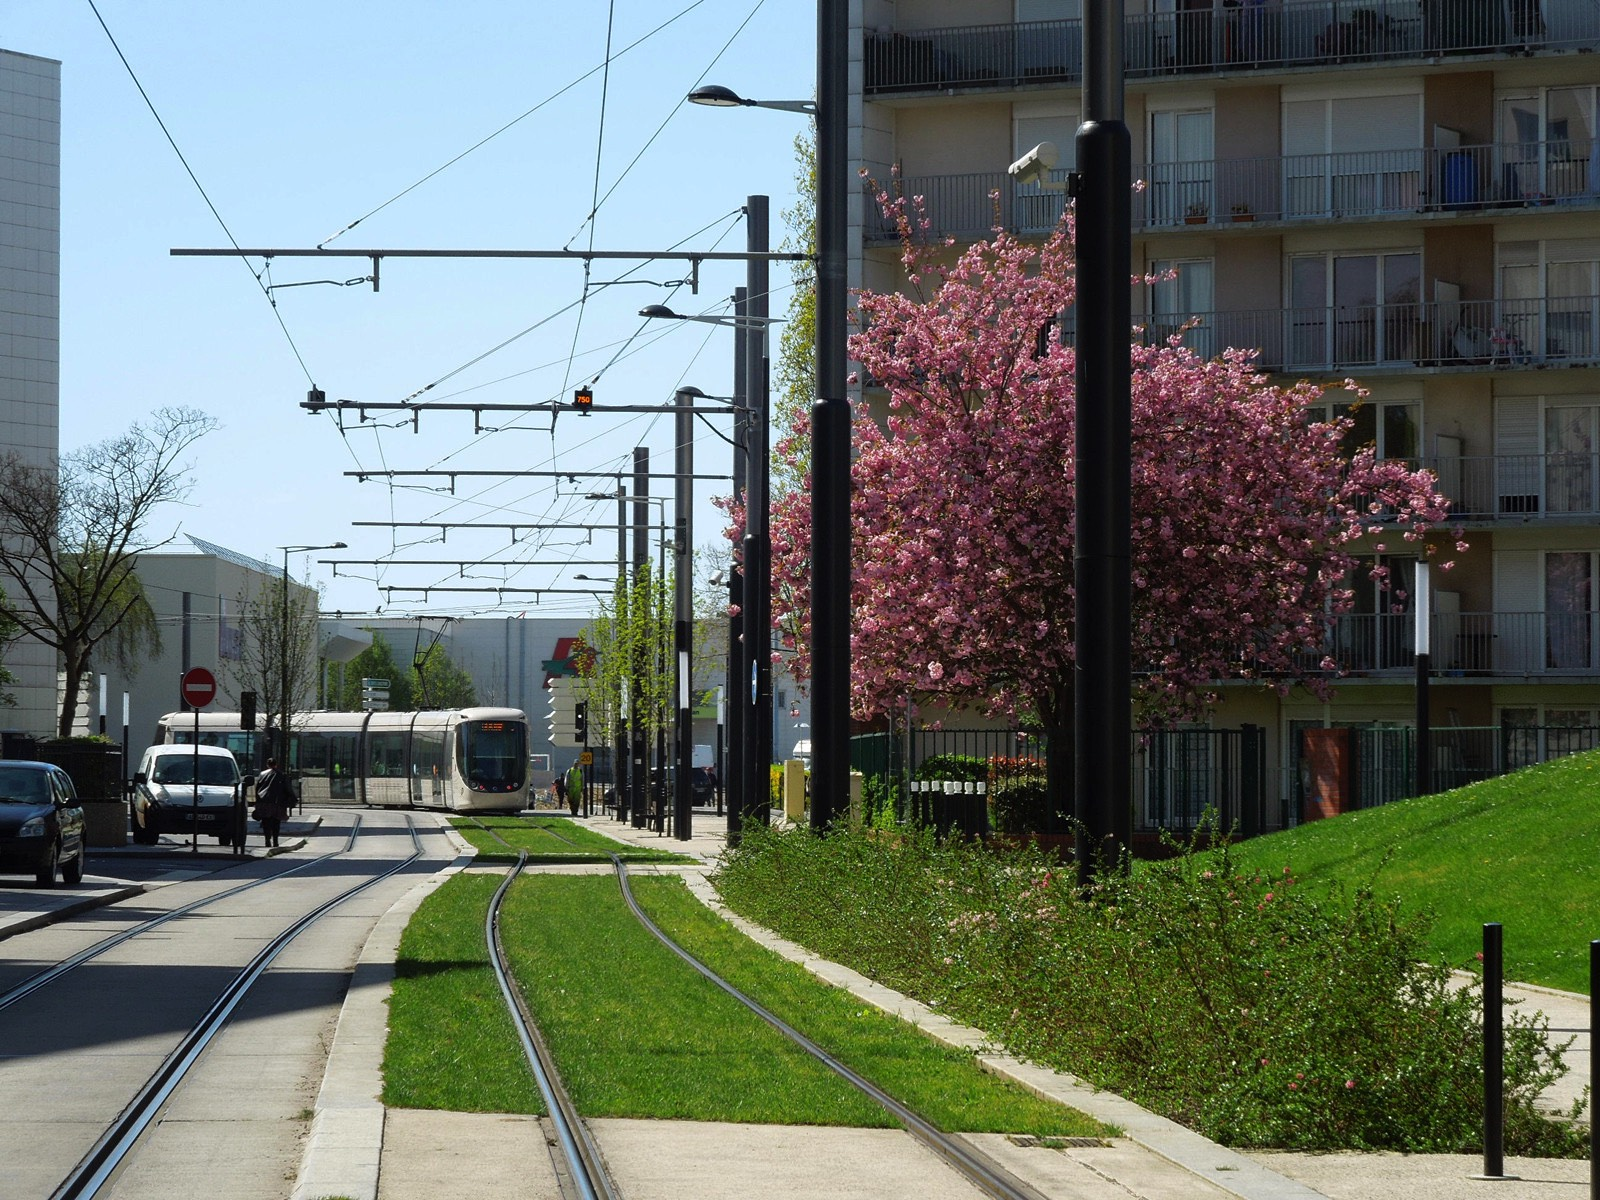 13-LE HAVRE_Tramway ©AJOA (60)-5fd1fbba8d803.jpeg